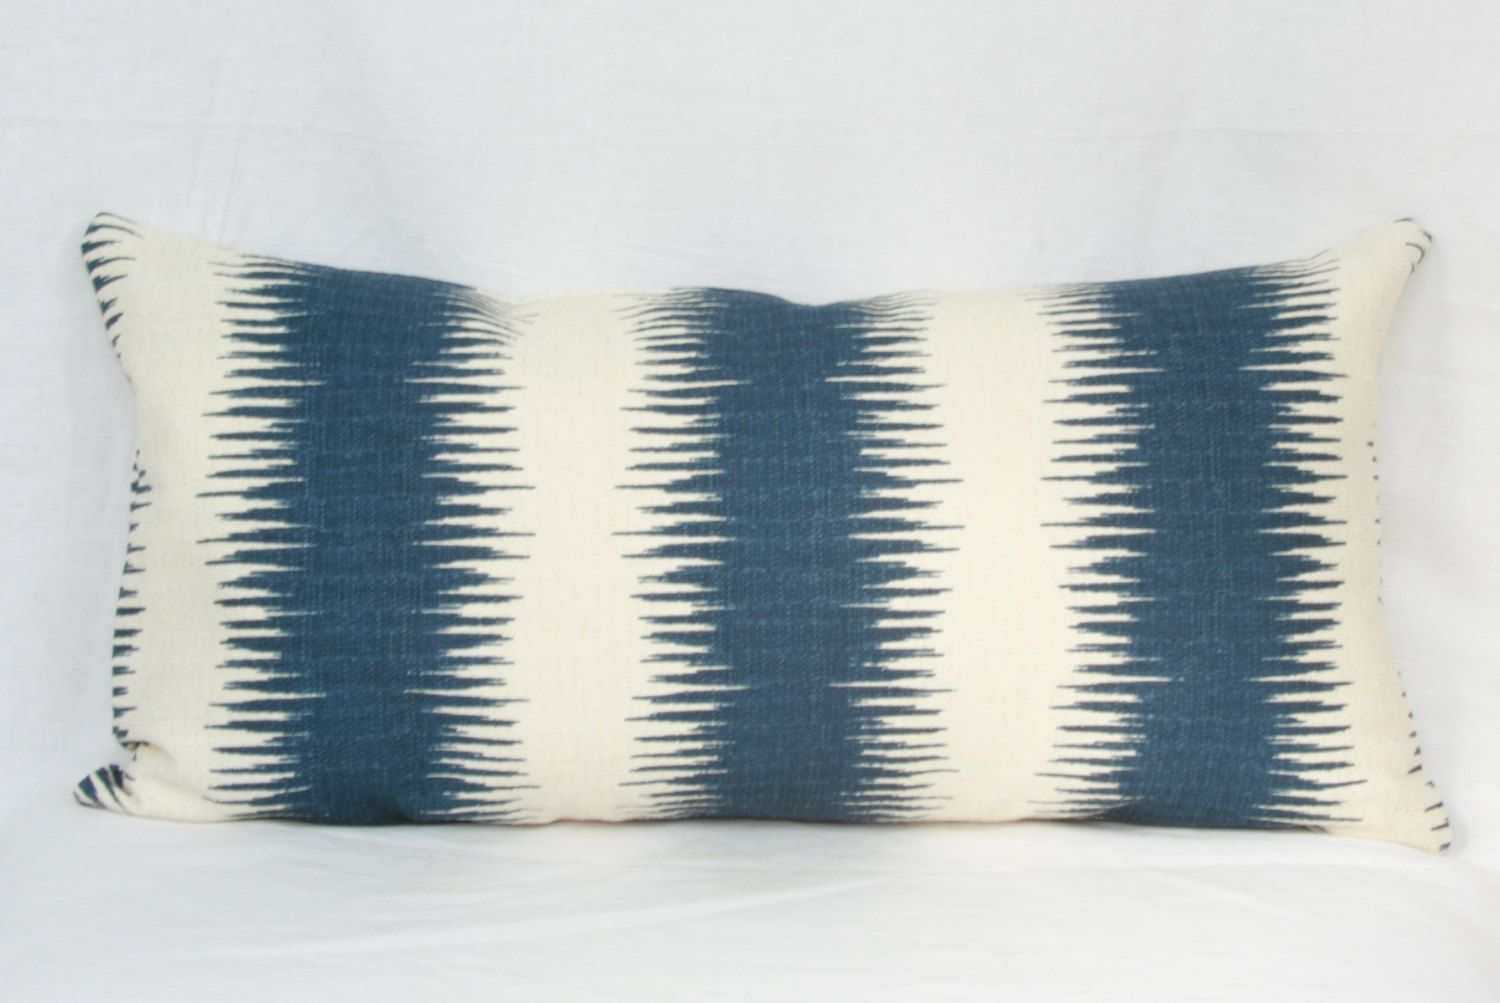 16X26 Pillow Insert Glamorous Blue Natural Tribal Stripe Throw Pillow Cover 12X20 12X24 14X24 Design Decoration